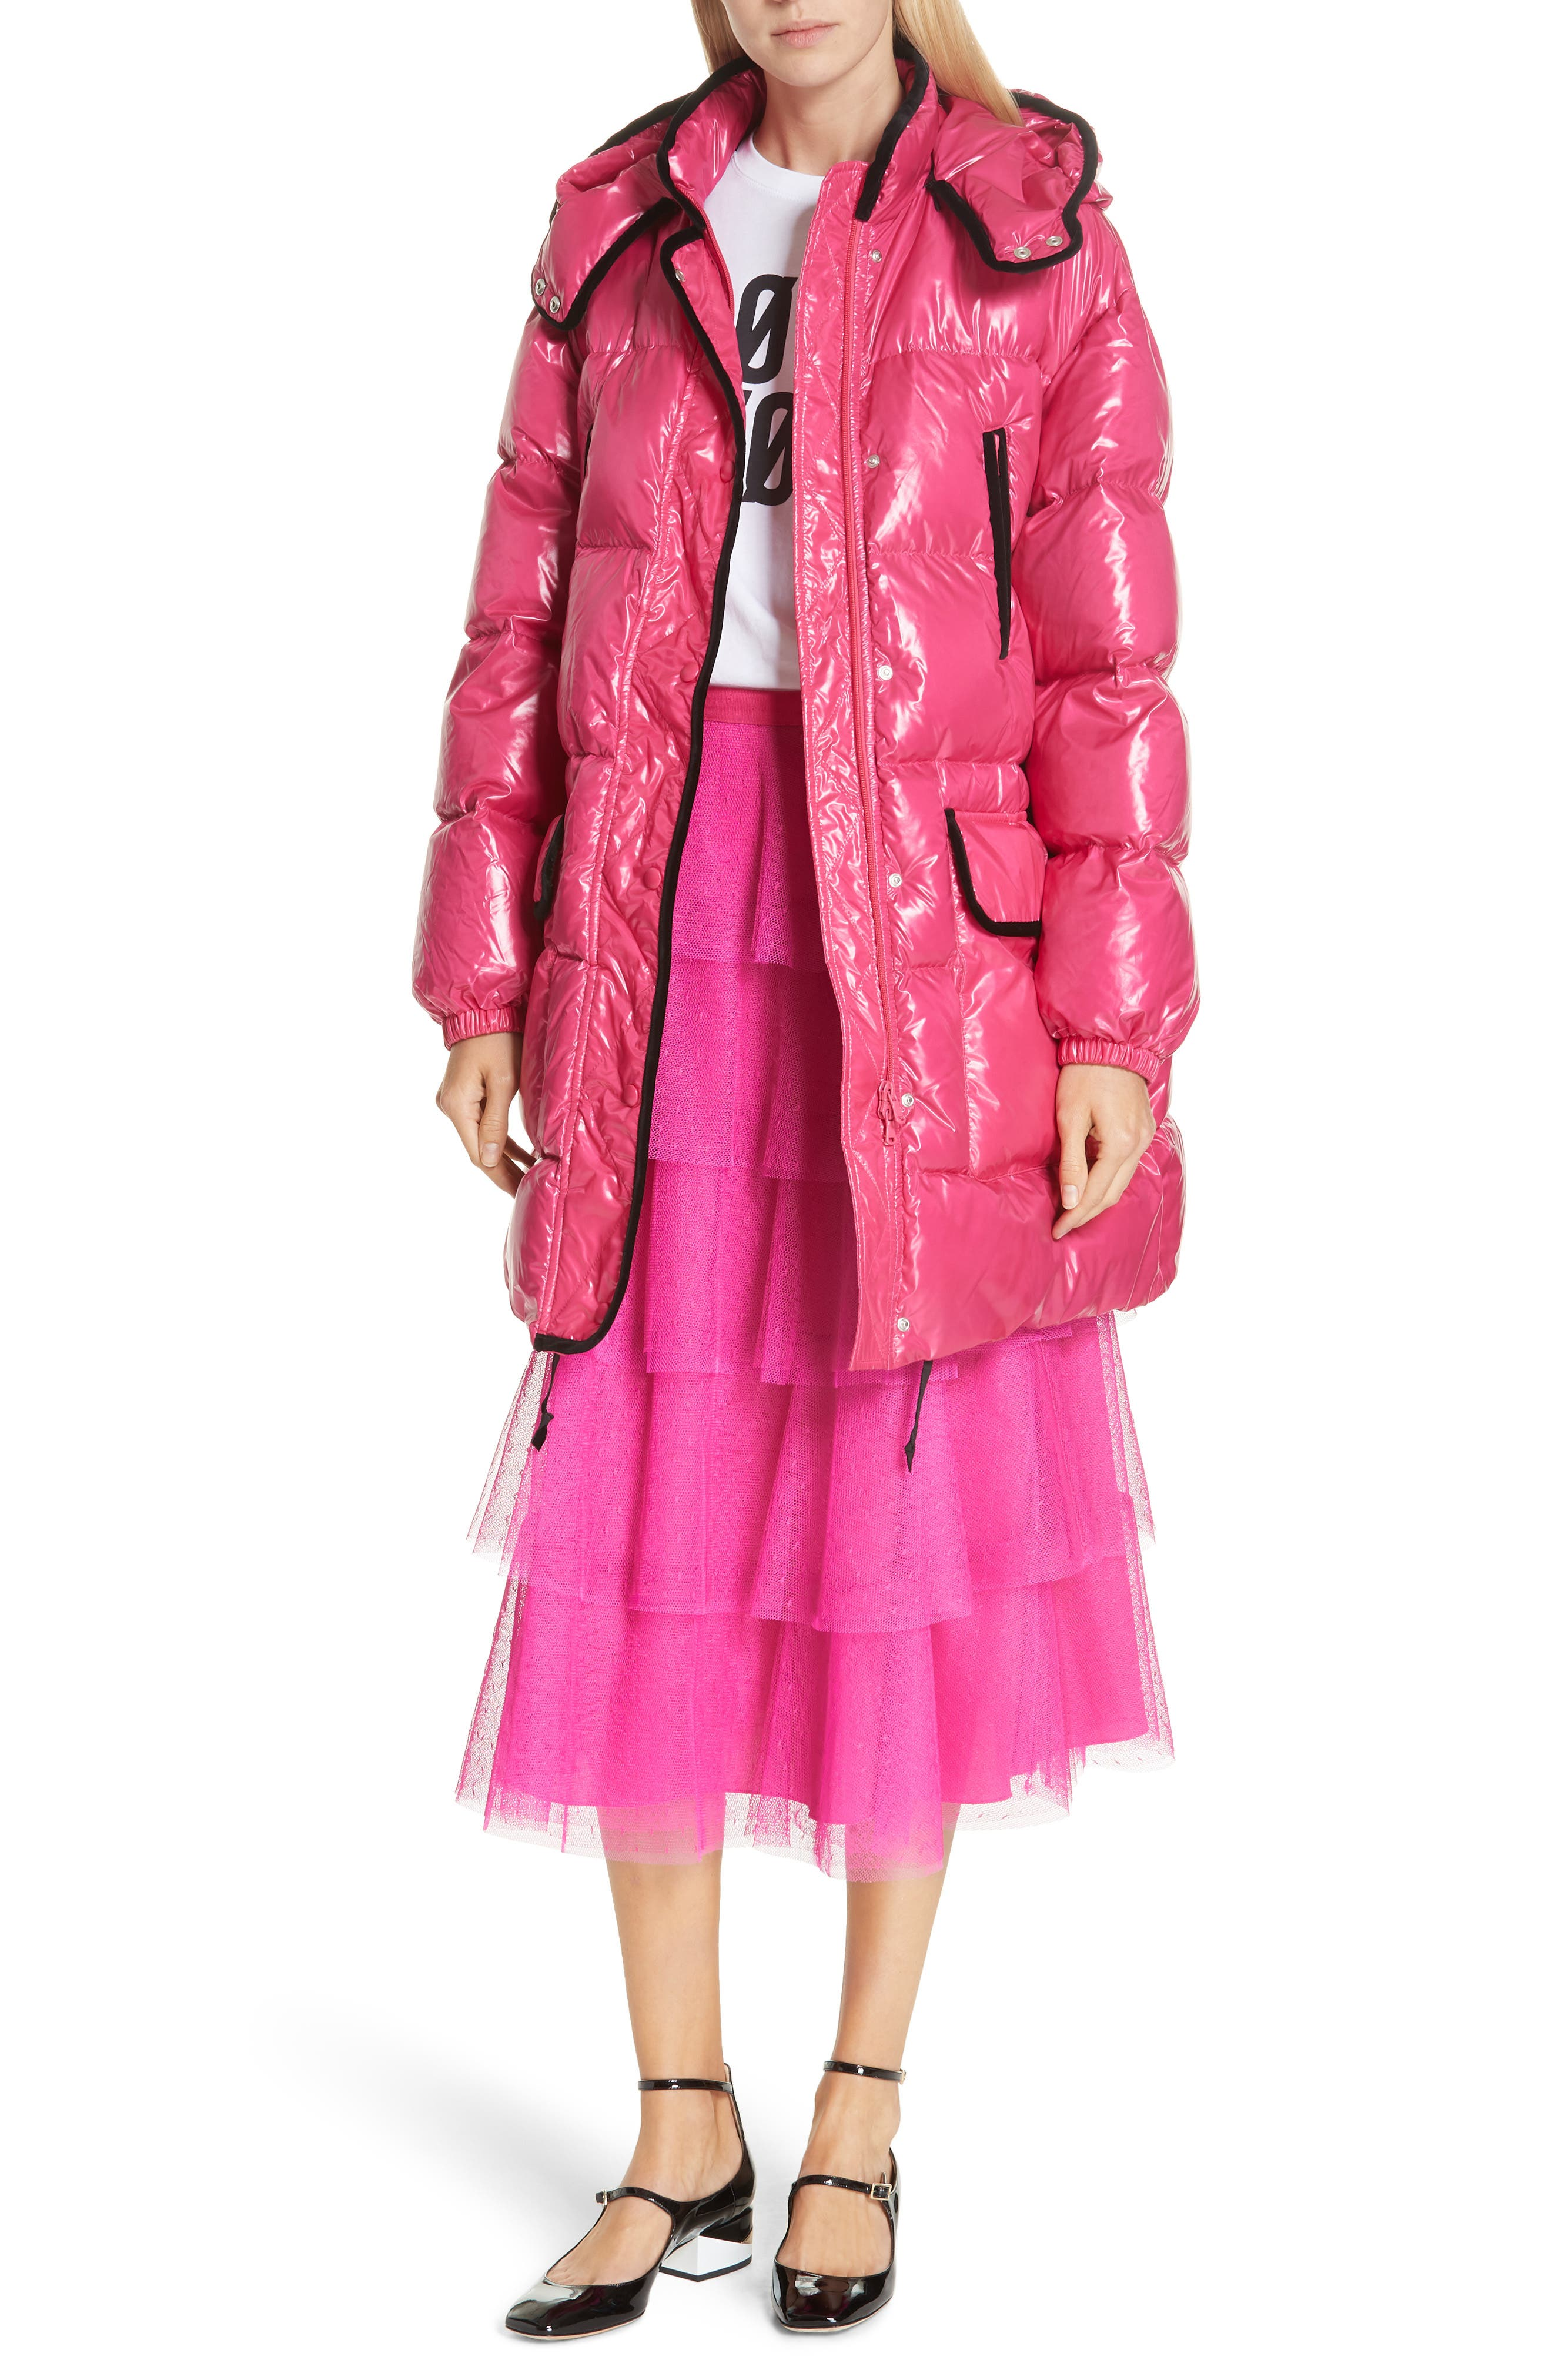 RED VALENTINO,                             Puffer Coat,                             Alternate thumbnail 7, color,                             650